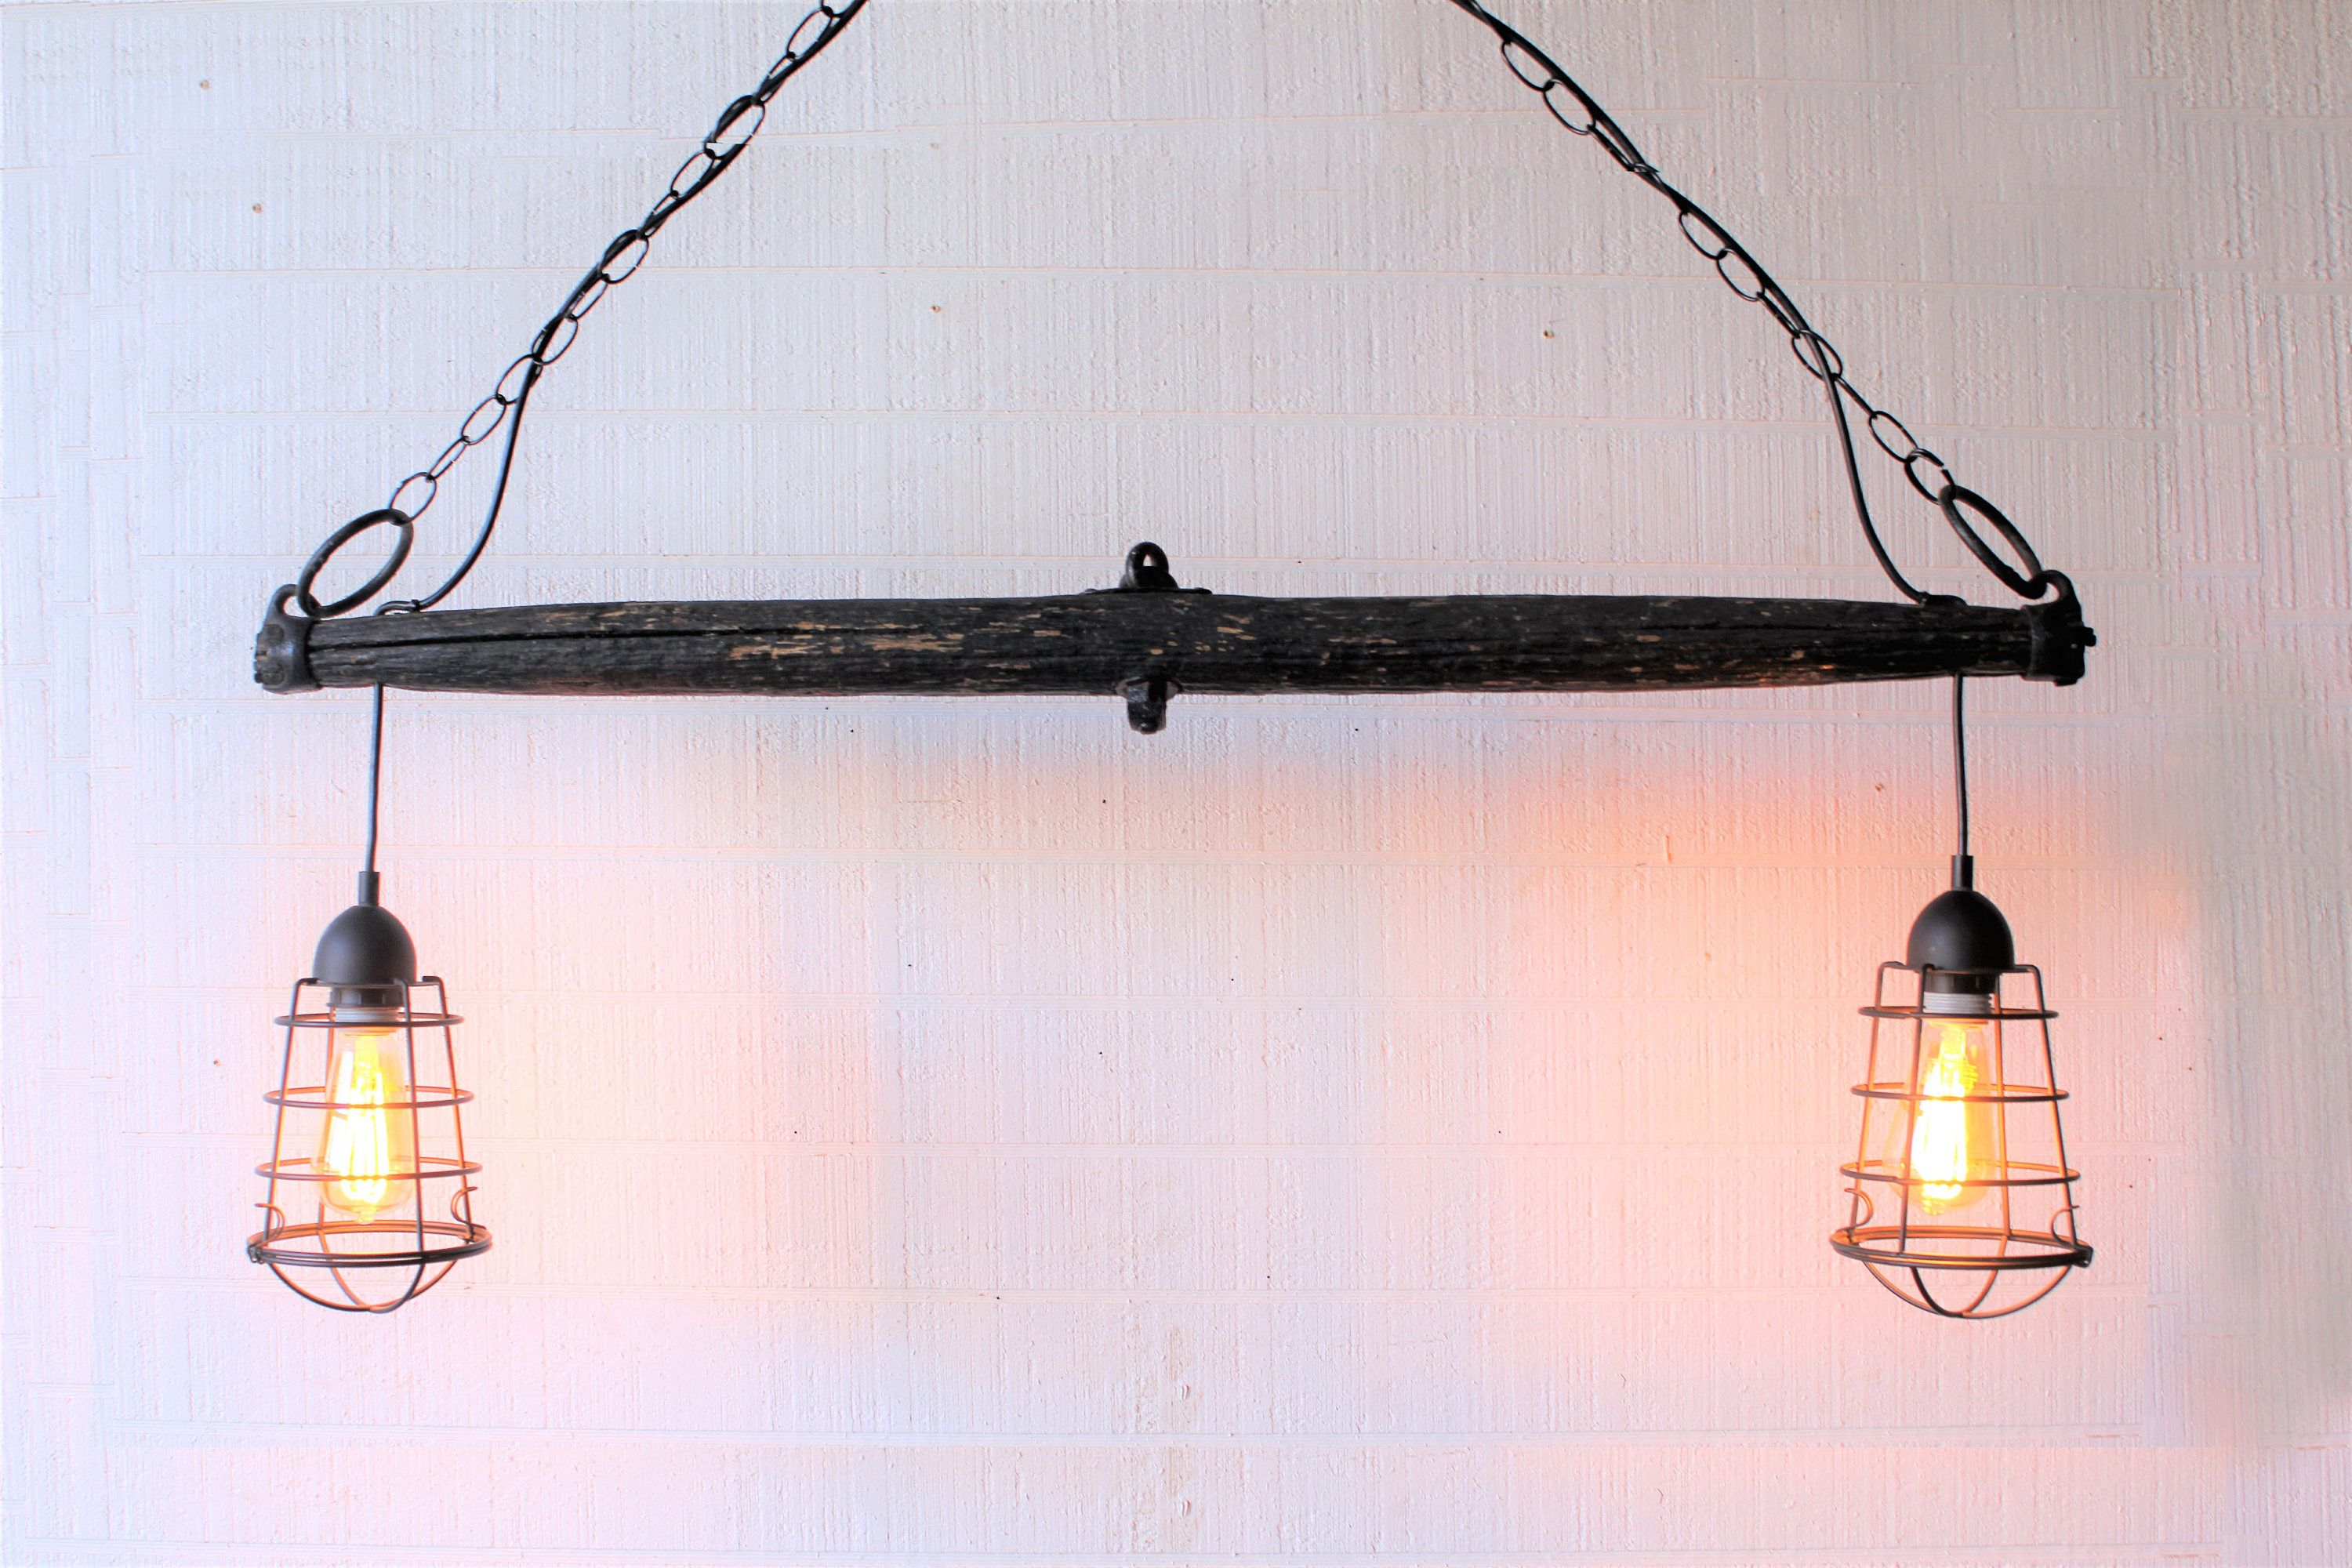 Rustic Ceiling light, industrial kitchen light made from a